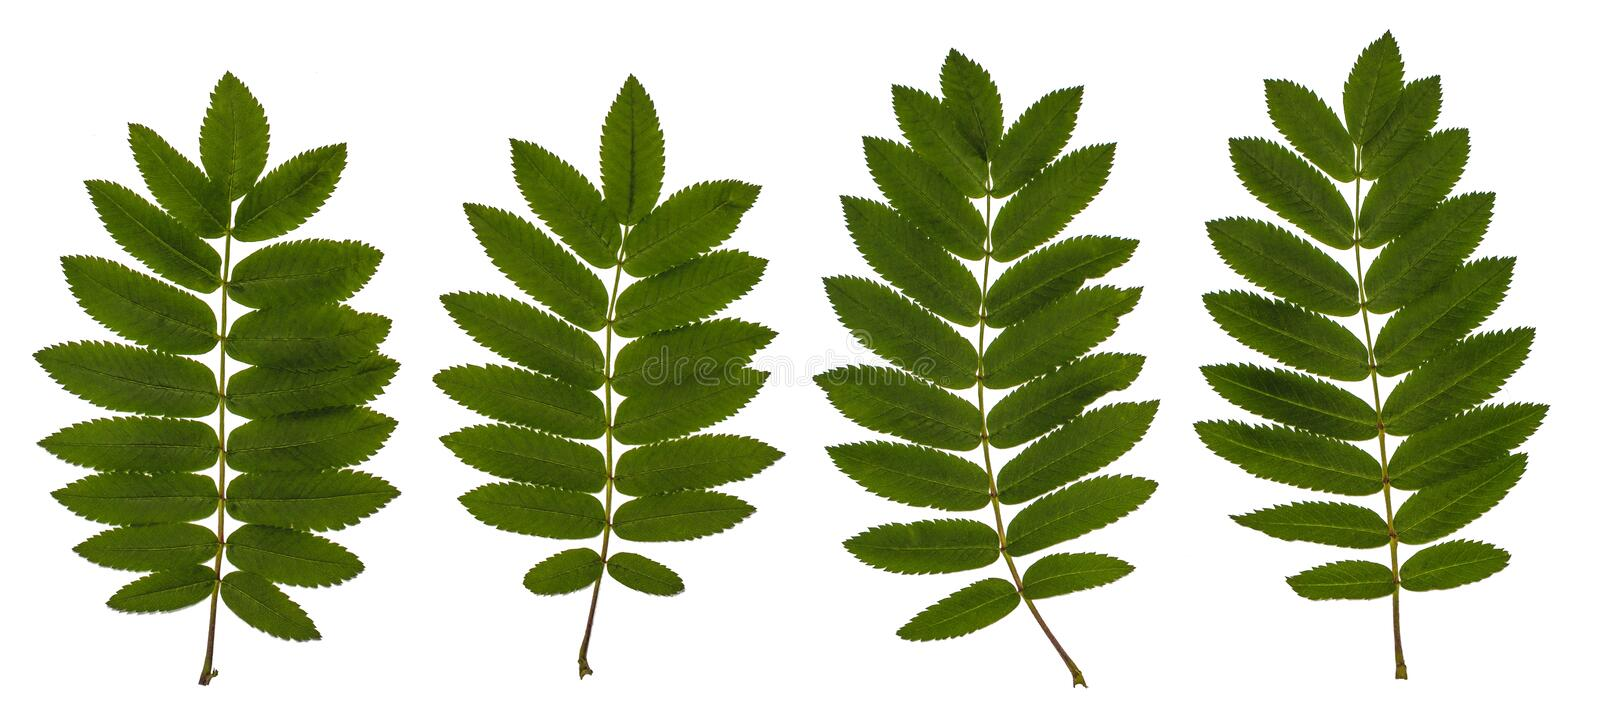 The leaves of mountain ash, red ash, Sorbus aucuparia, the Rowan set of leaves, compound leaves, leaves on a white background royalty free stock photography